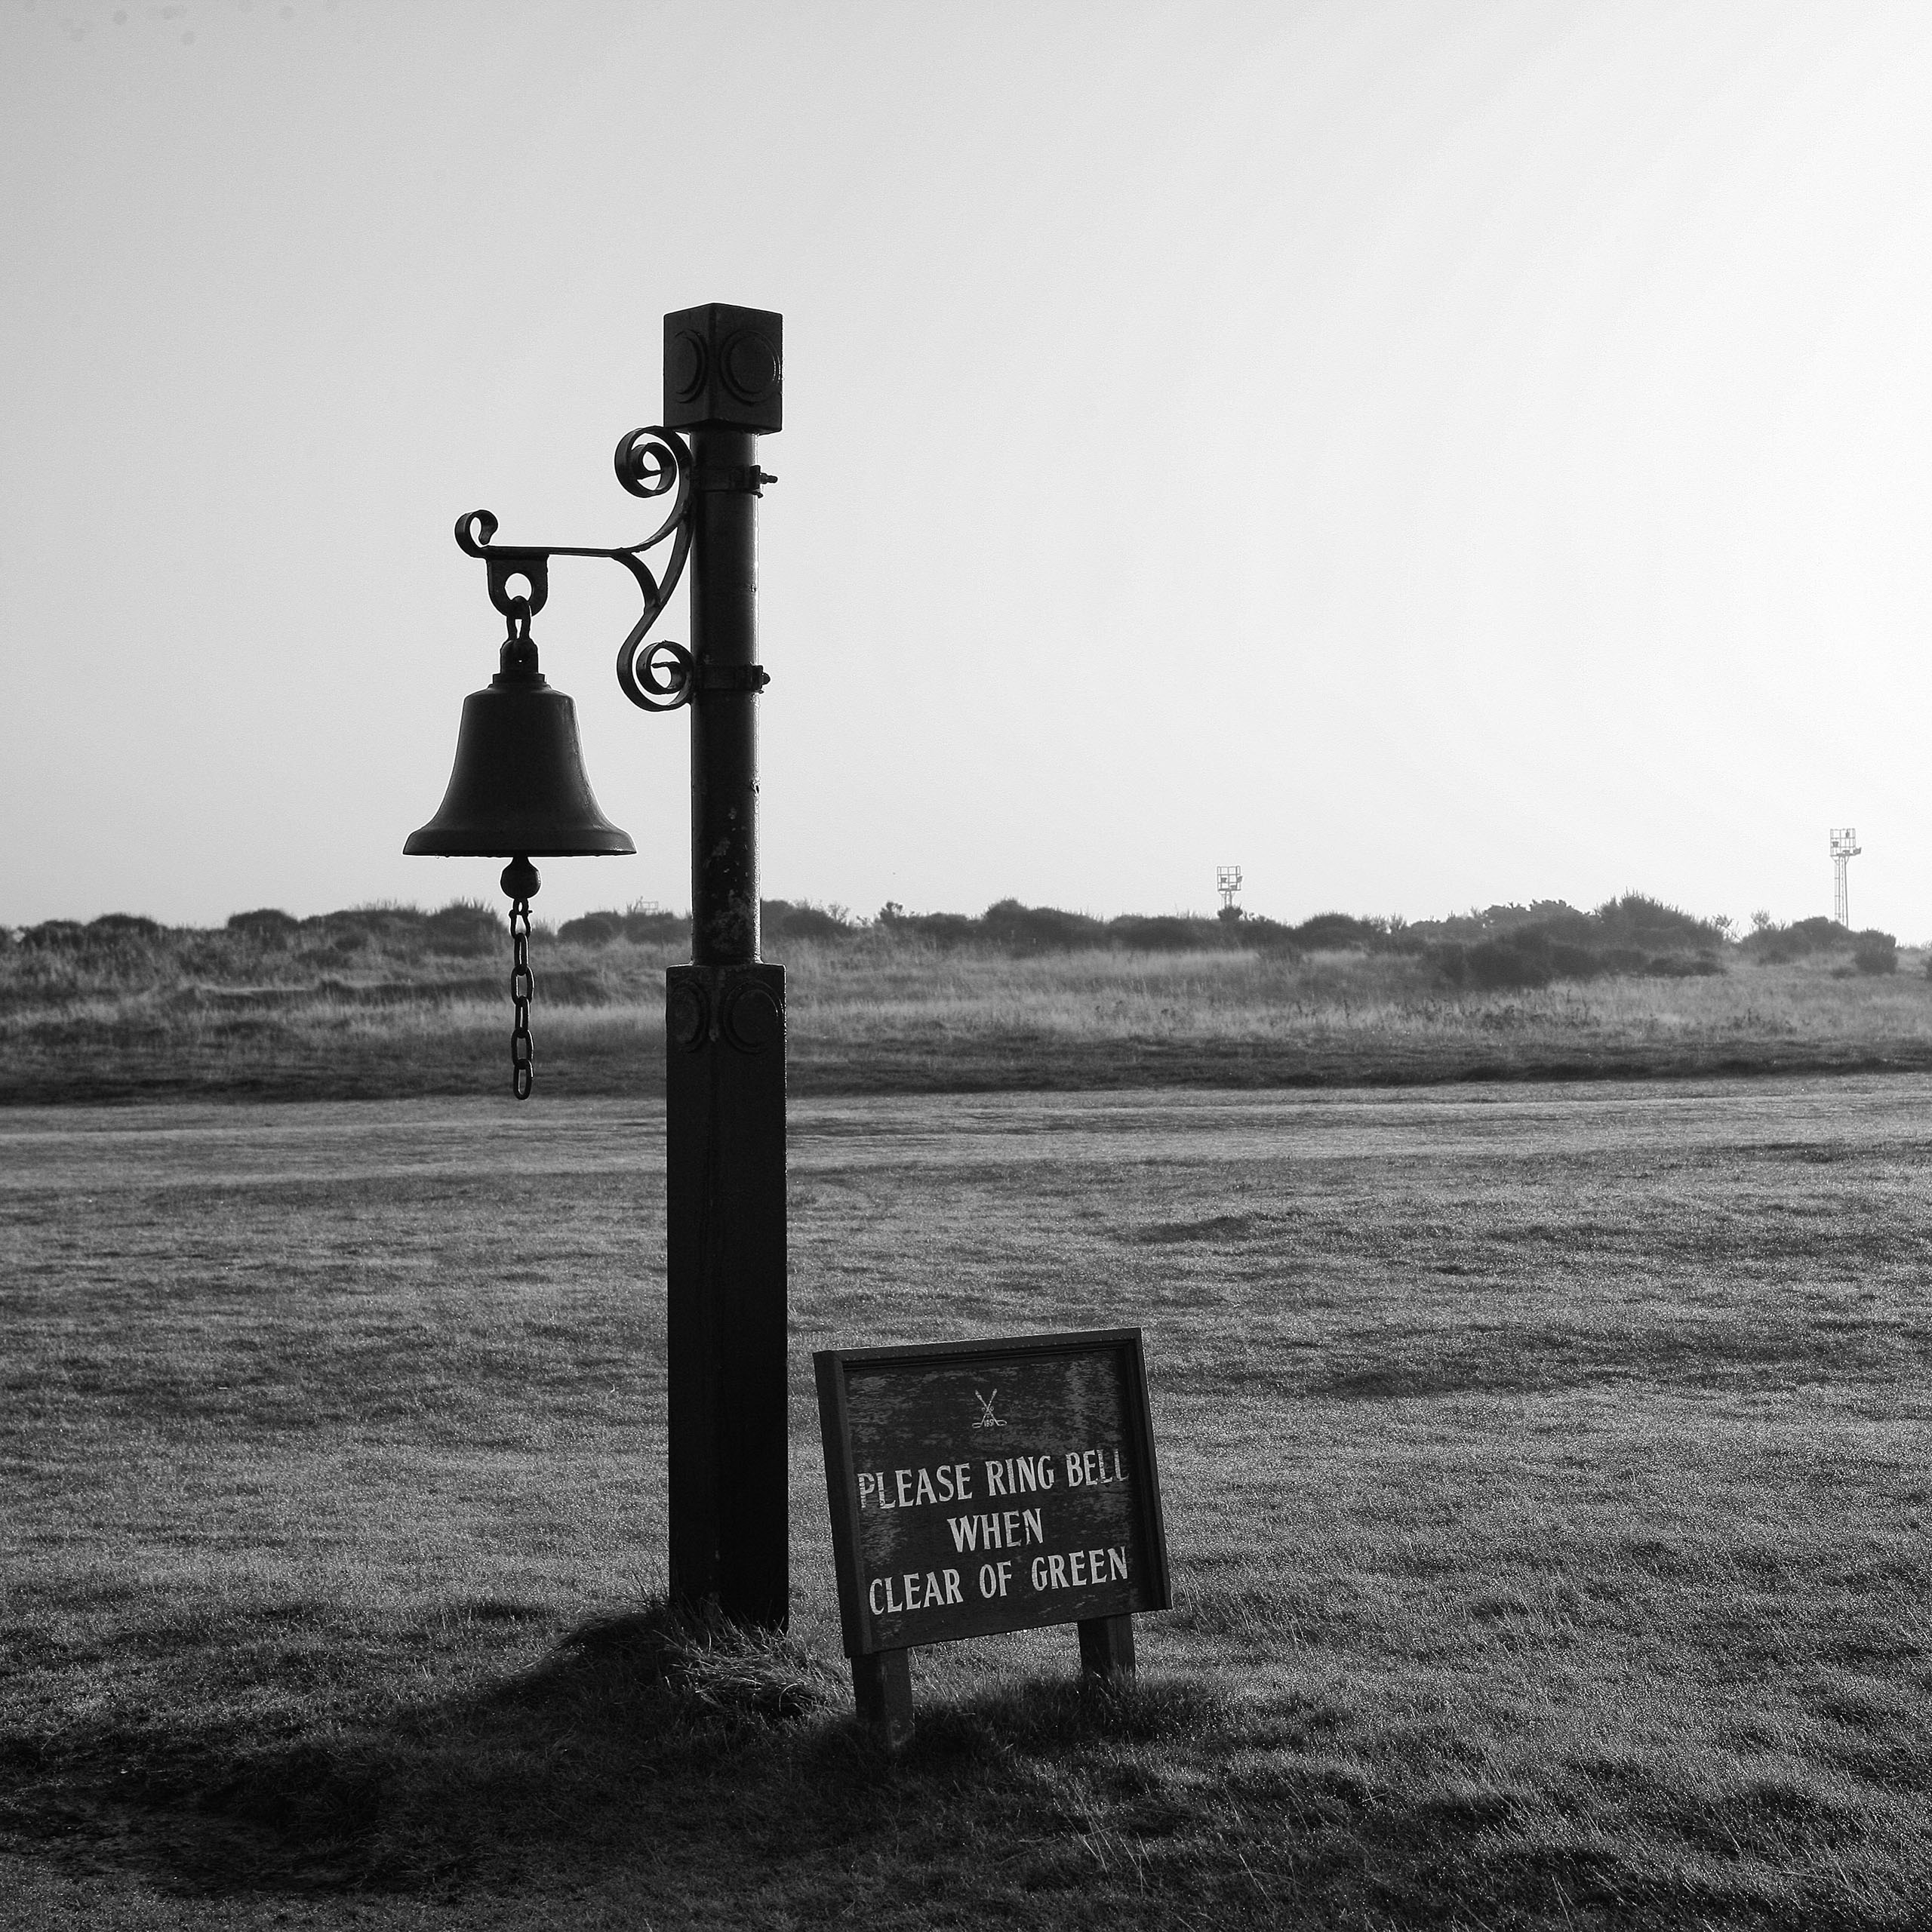 The bell on the long par-3 fifth hole at Prestwick Golf Club. It's a blind shot, so when you finish putting, you sound the bell, notifying the next group on the tee. Photo by Taku Miyamoto